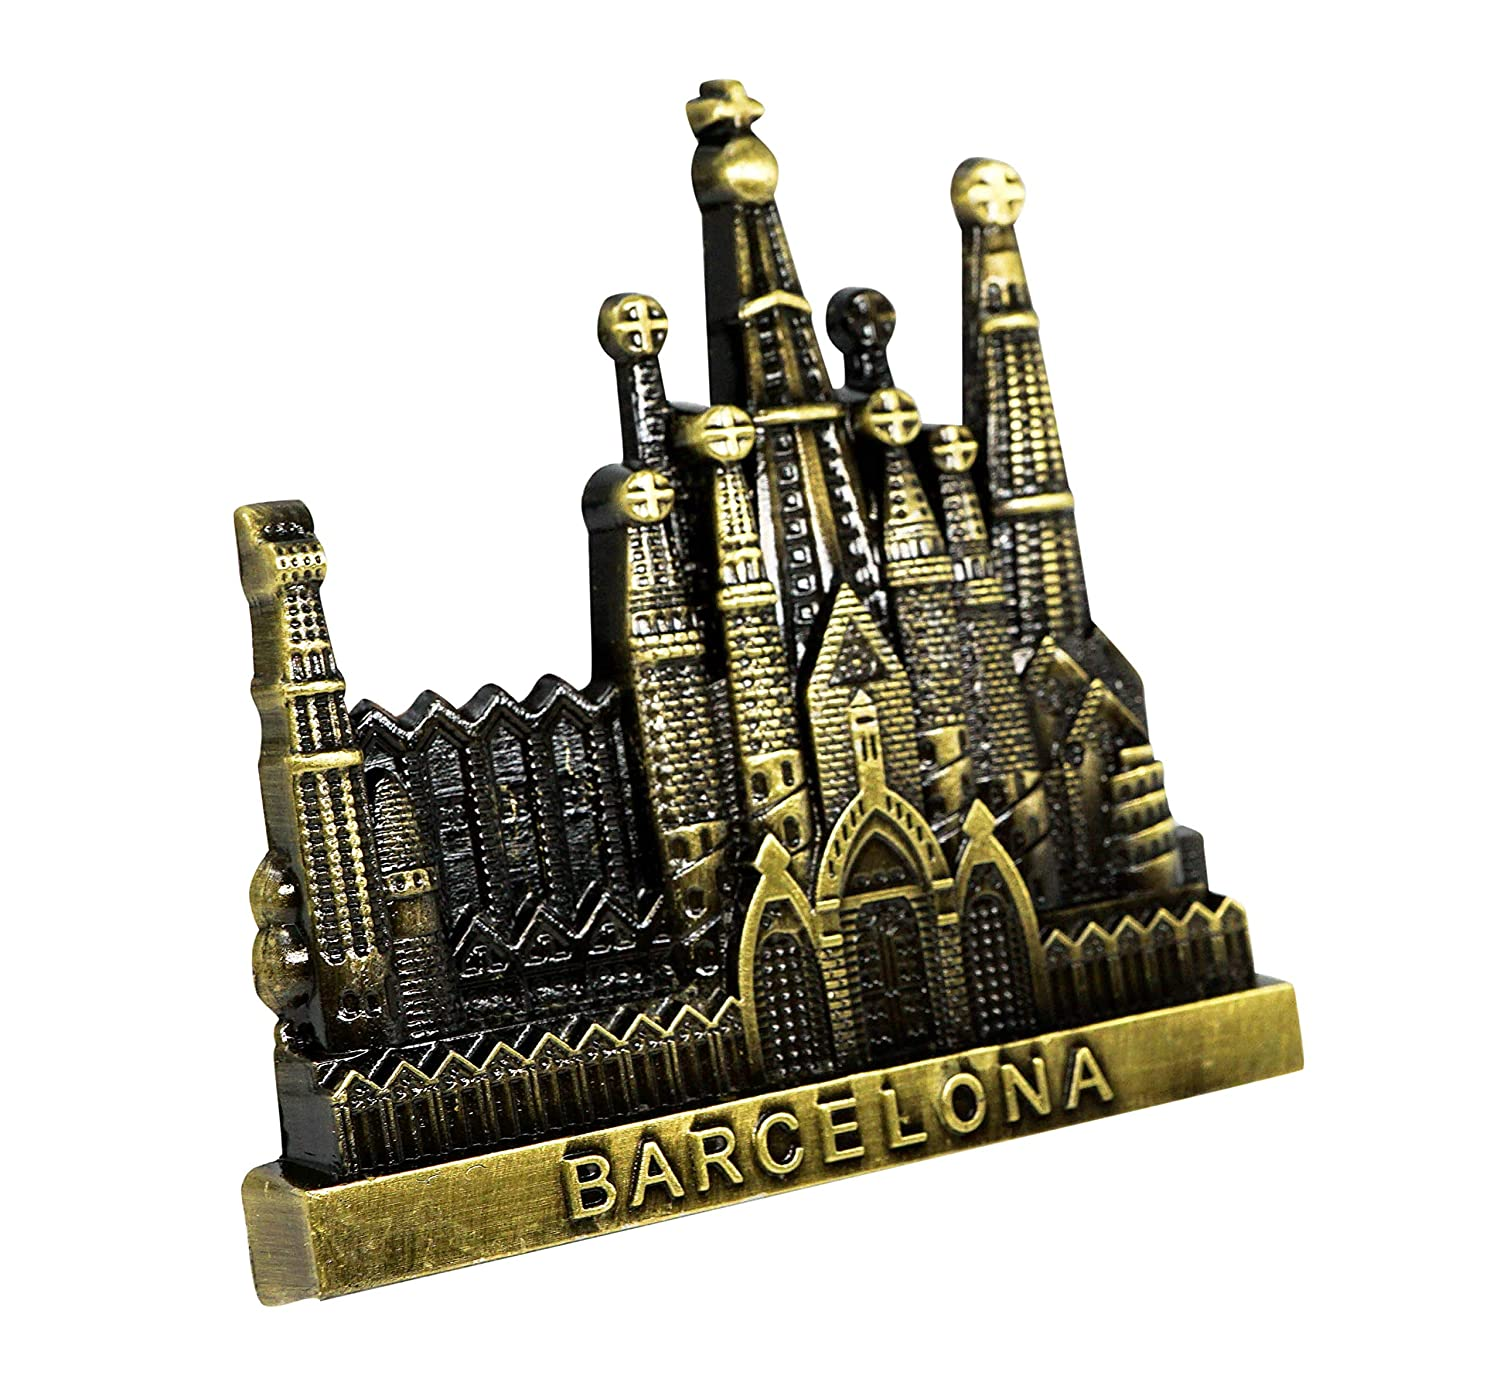 Sagrada Familia, Spain, 3D Imán De Metal para Nevera, Regalo de ...